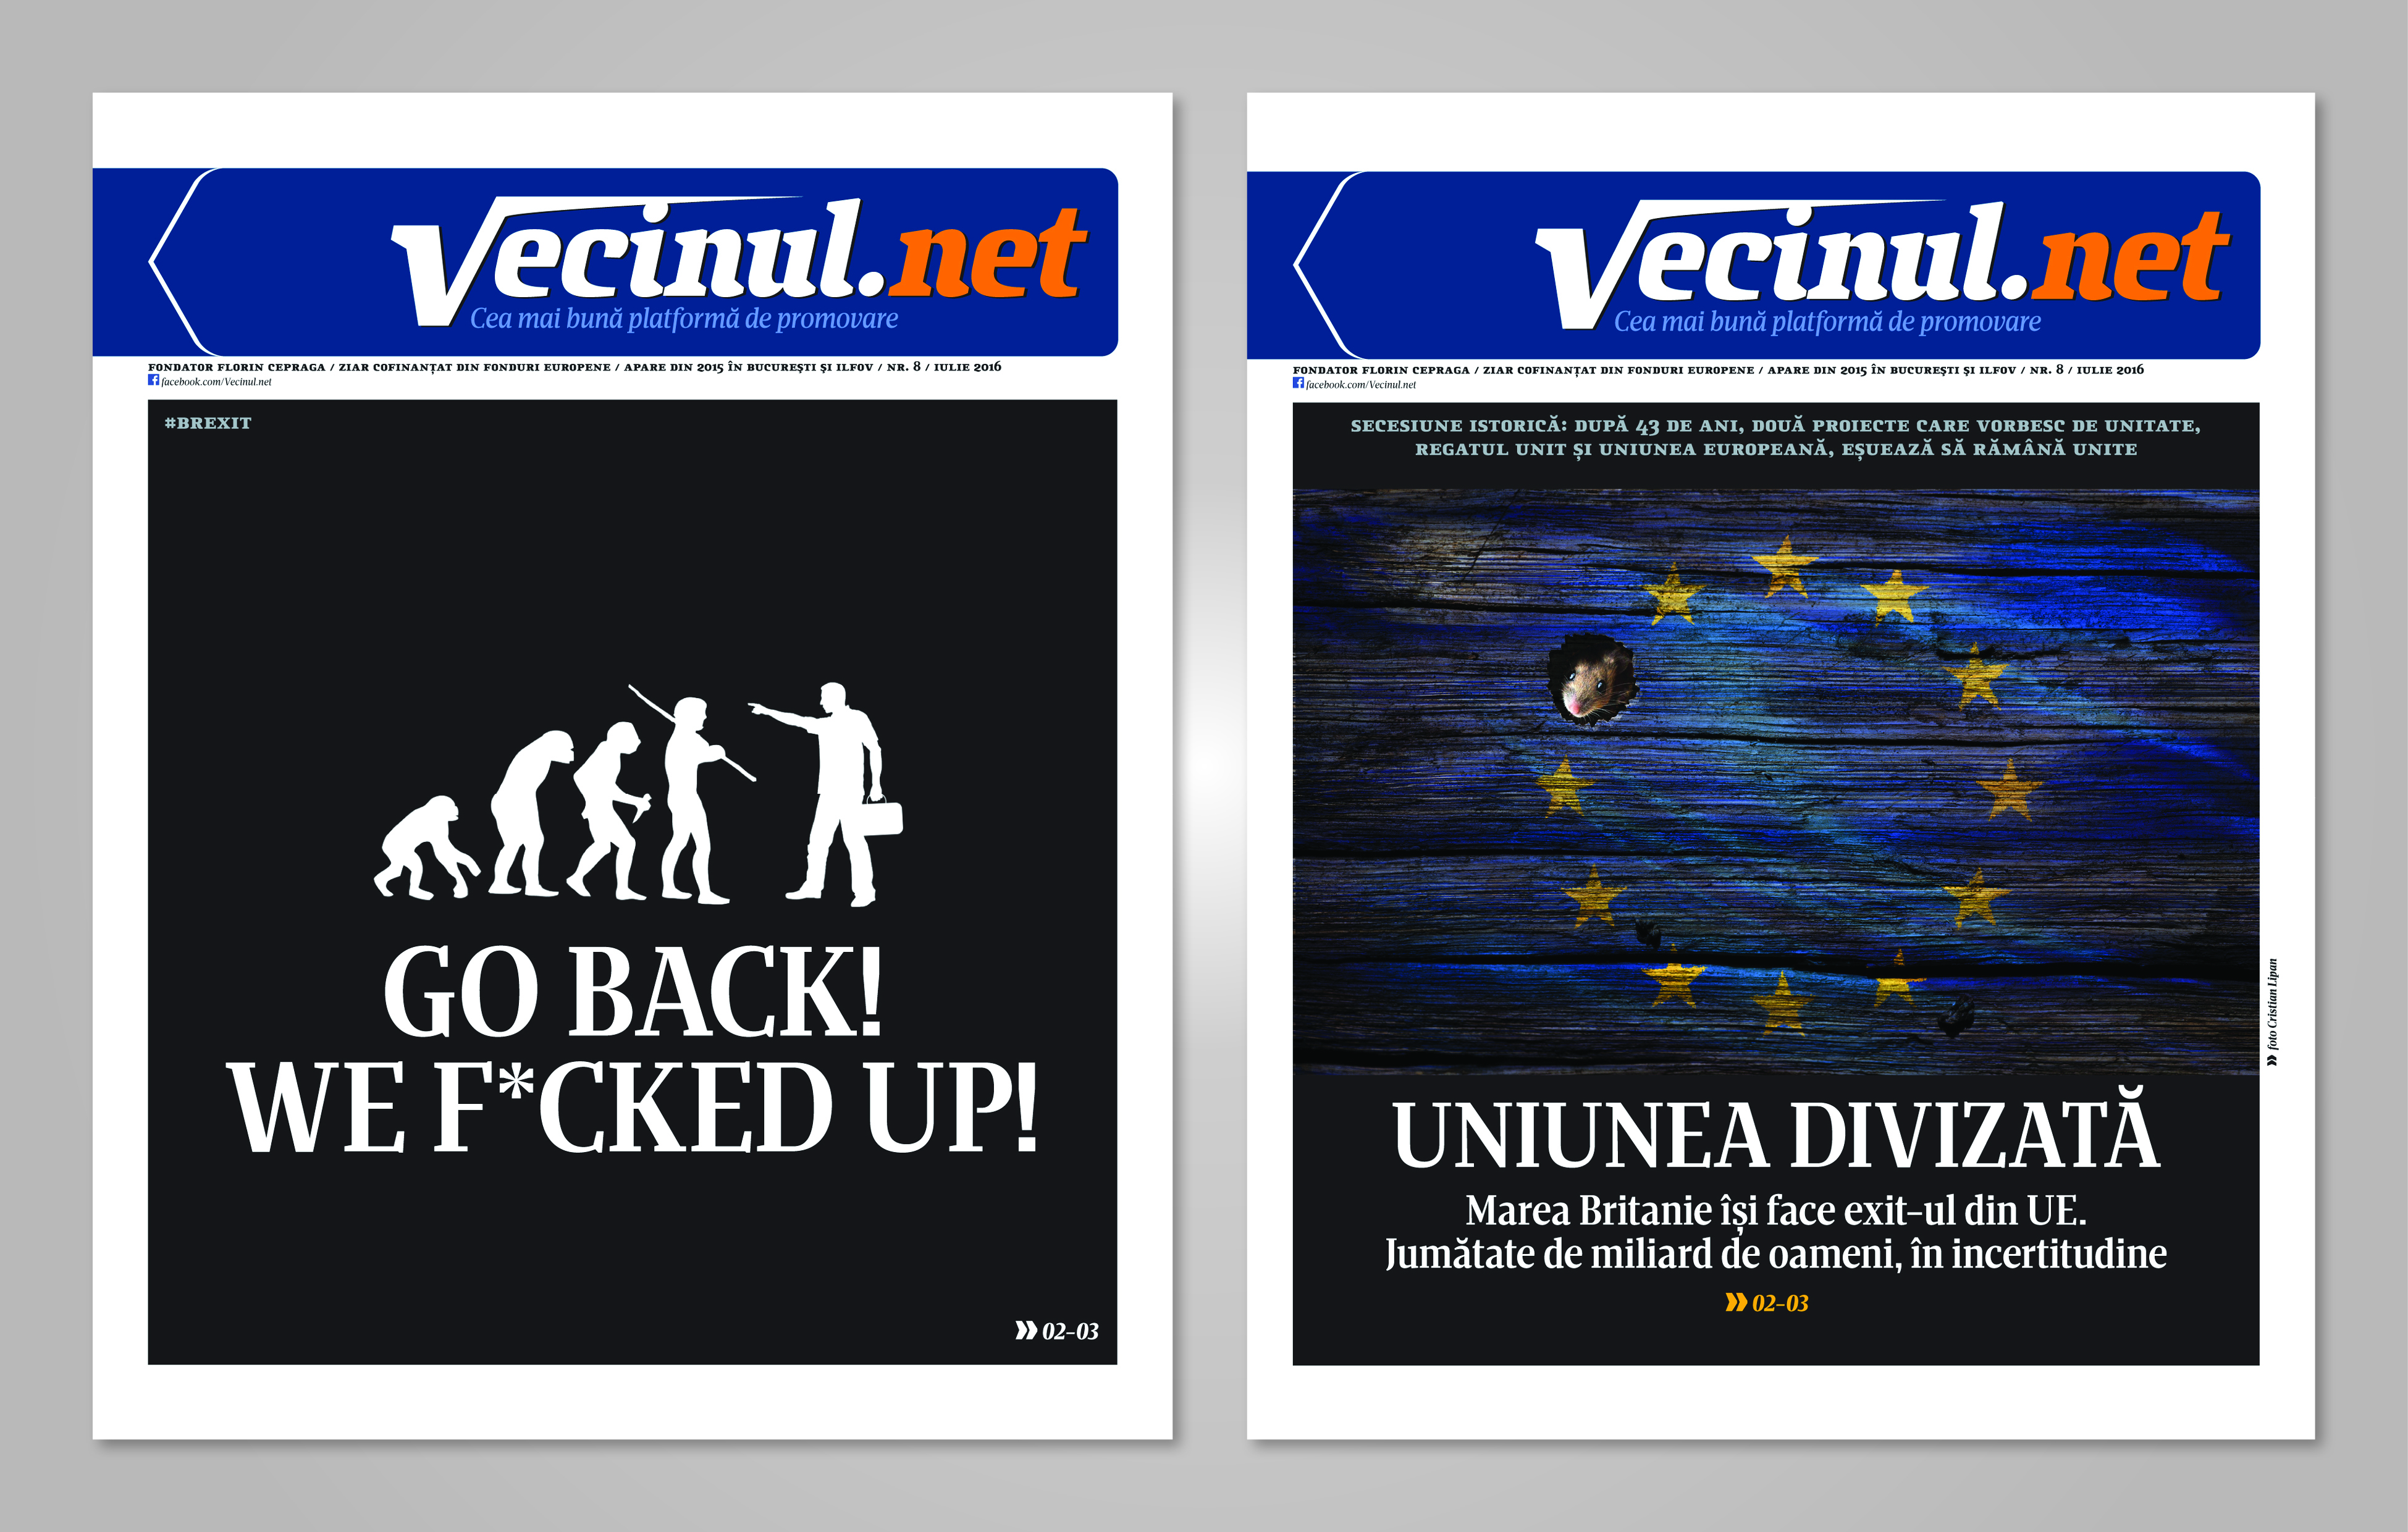 Vs front page